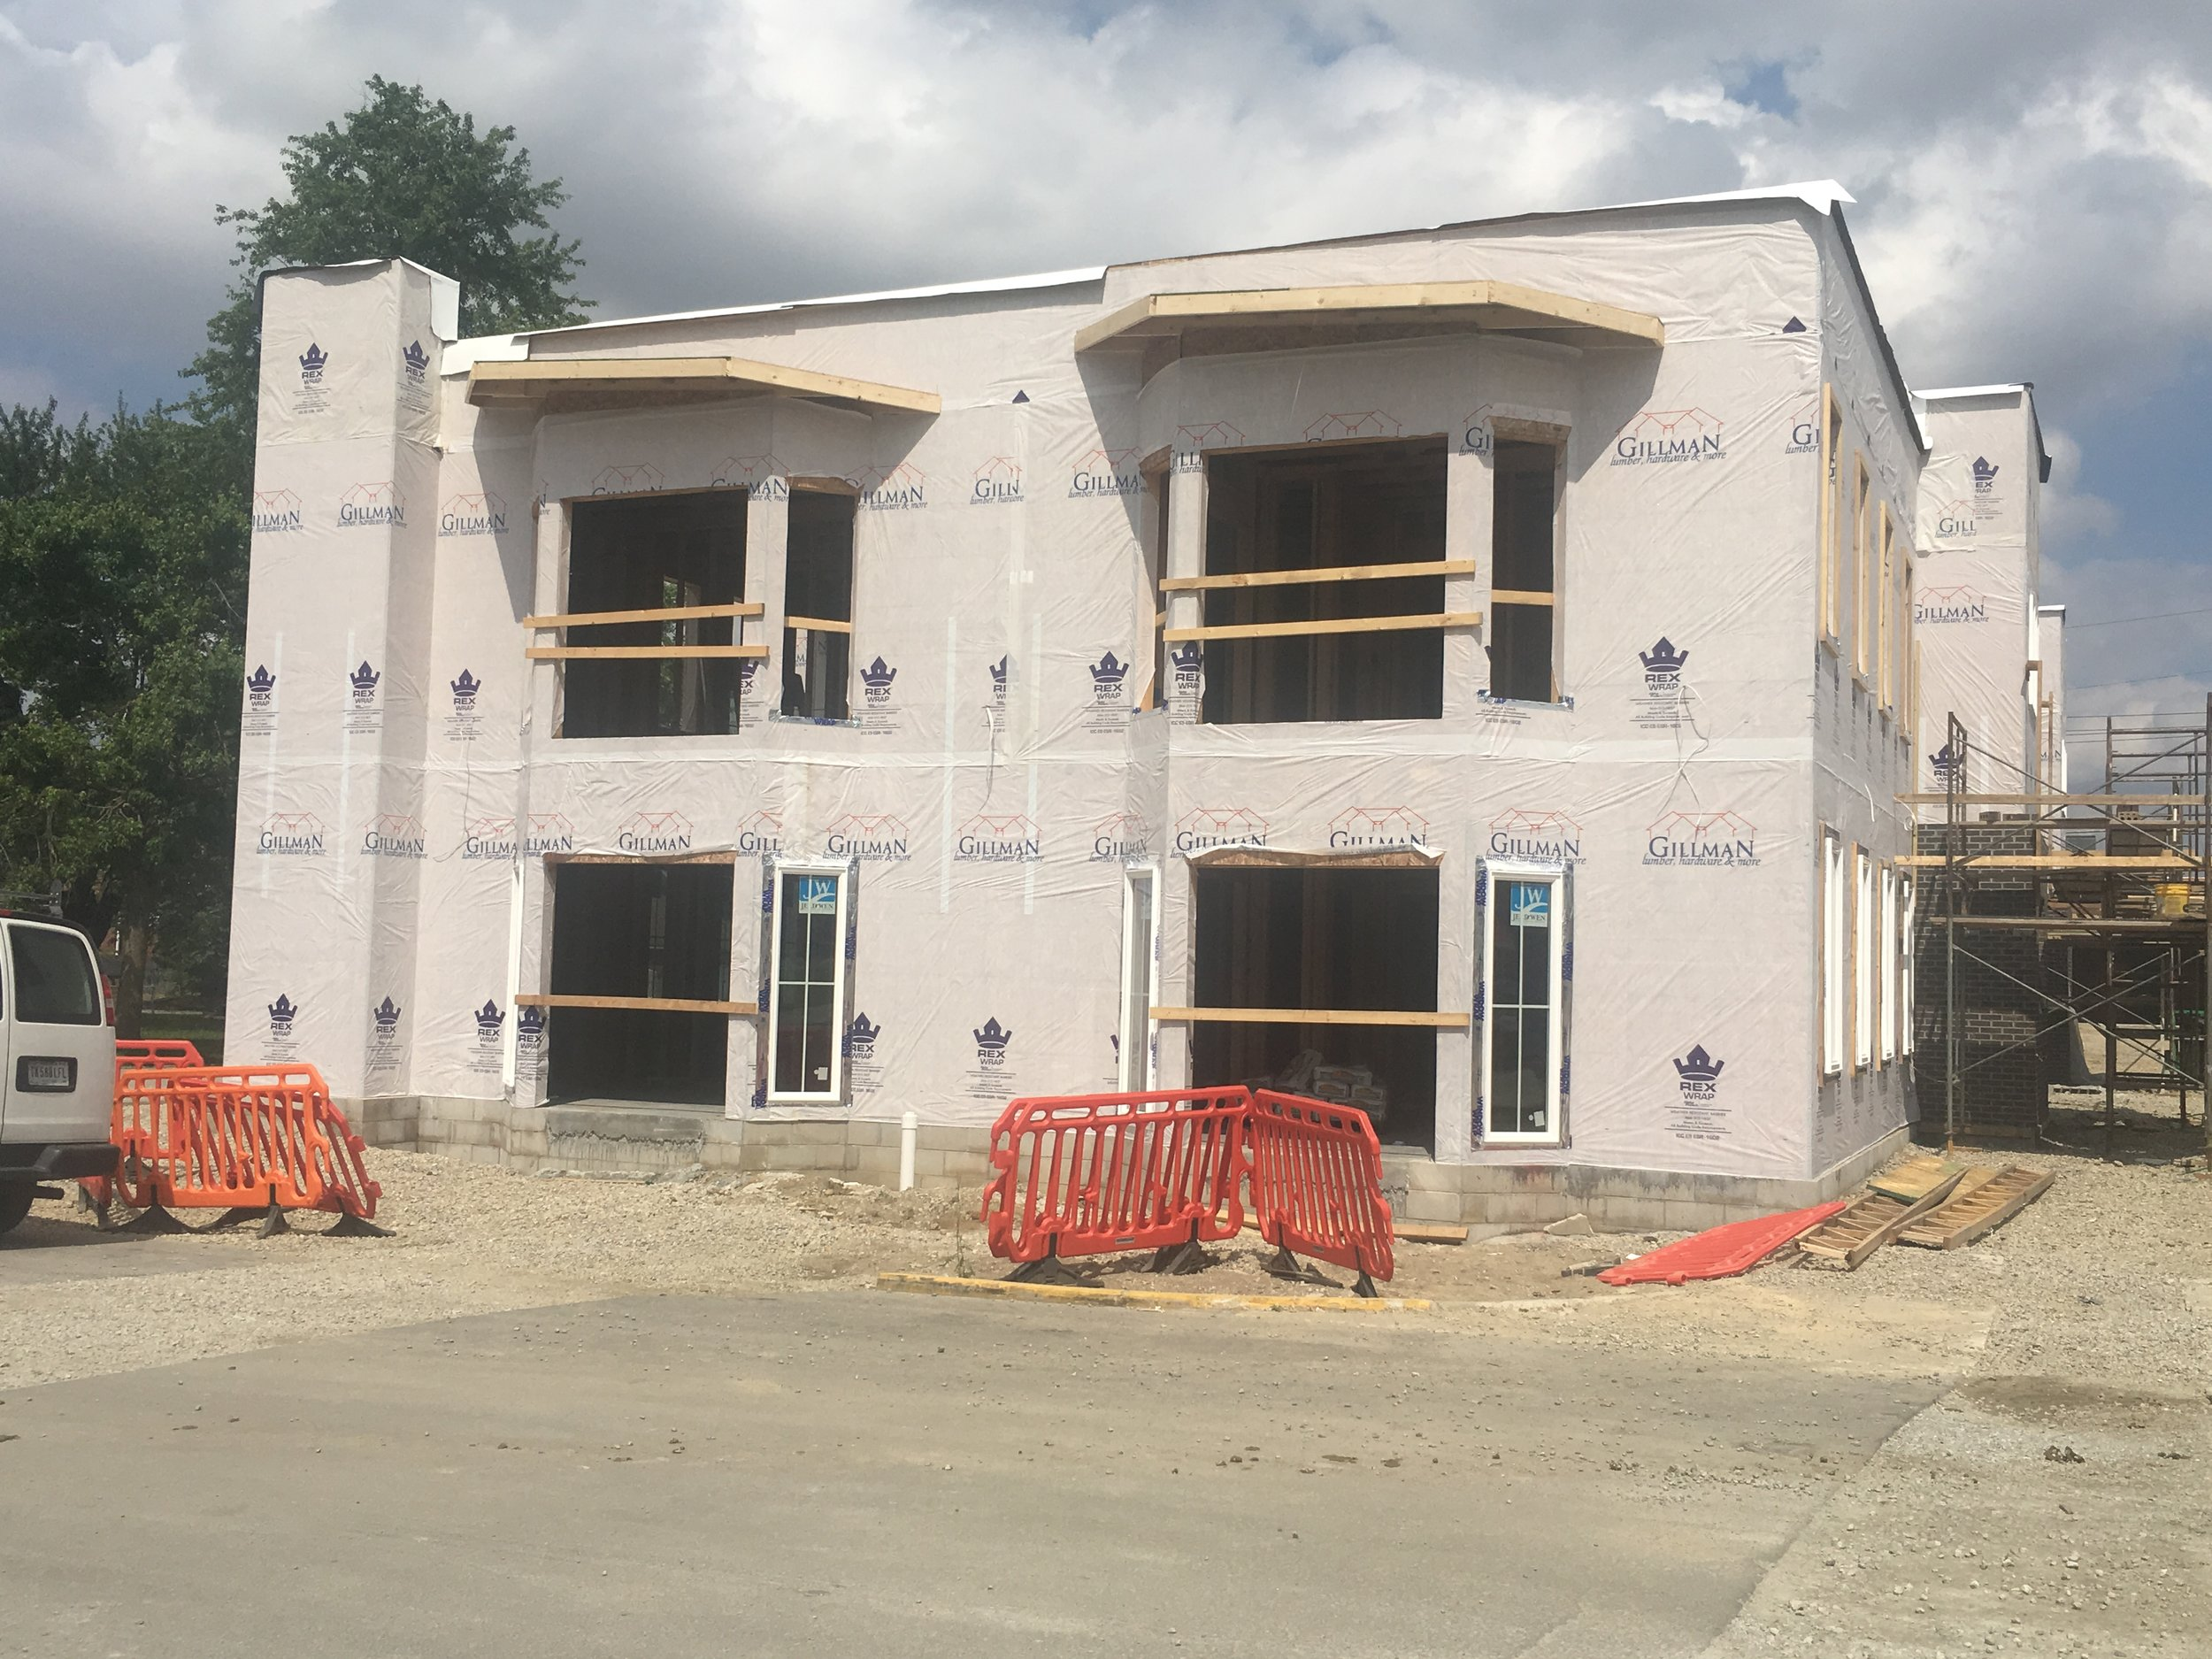 The Old Town Villas construction began in the spring. With 12-16 units, the rental complex will be the newest apartment complex in Hartford City.  Photo submitted by Bailey Cline